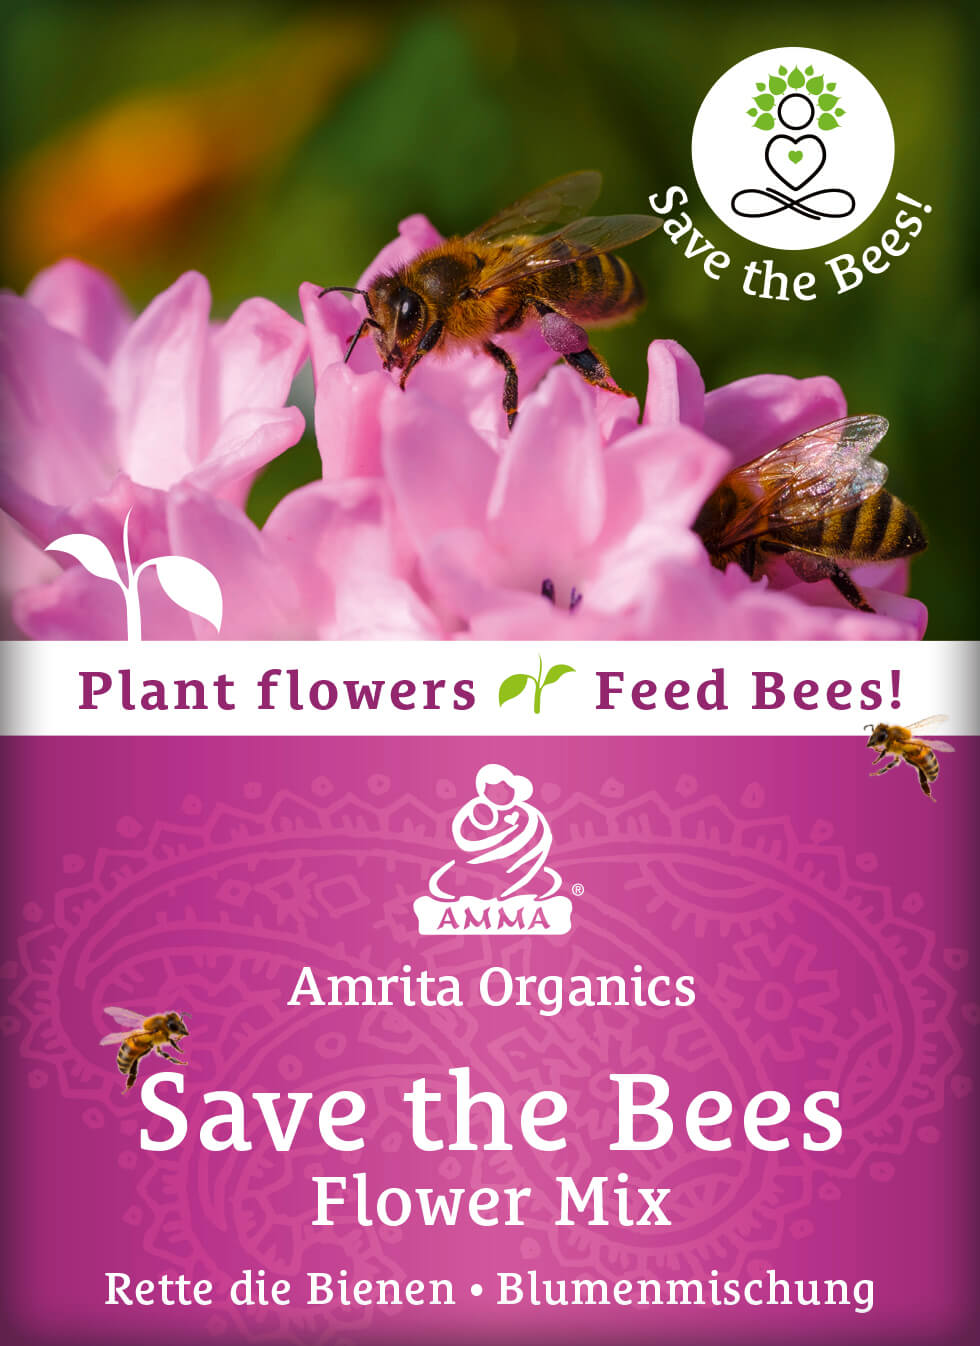 Save the bees - flower mixture, organic